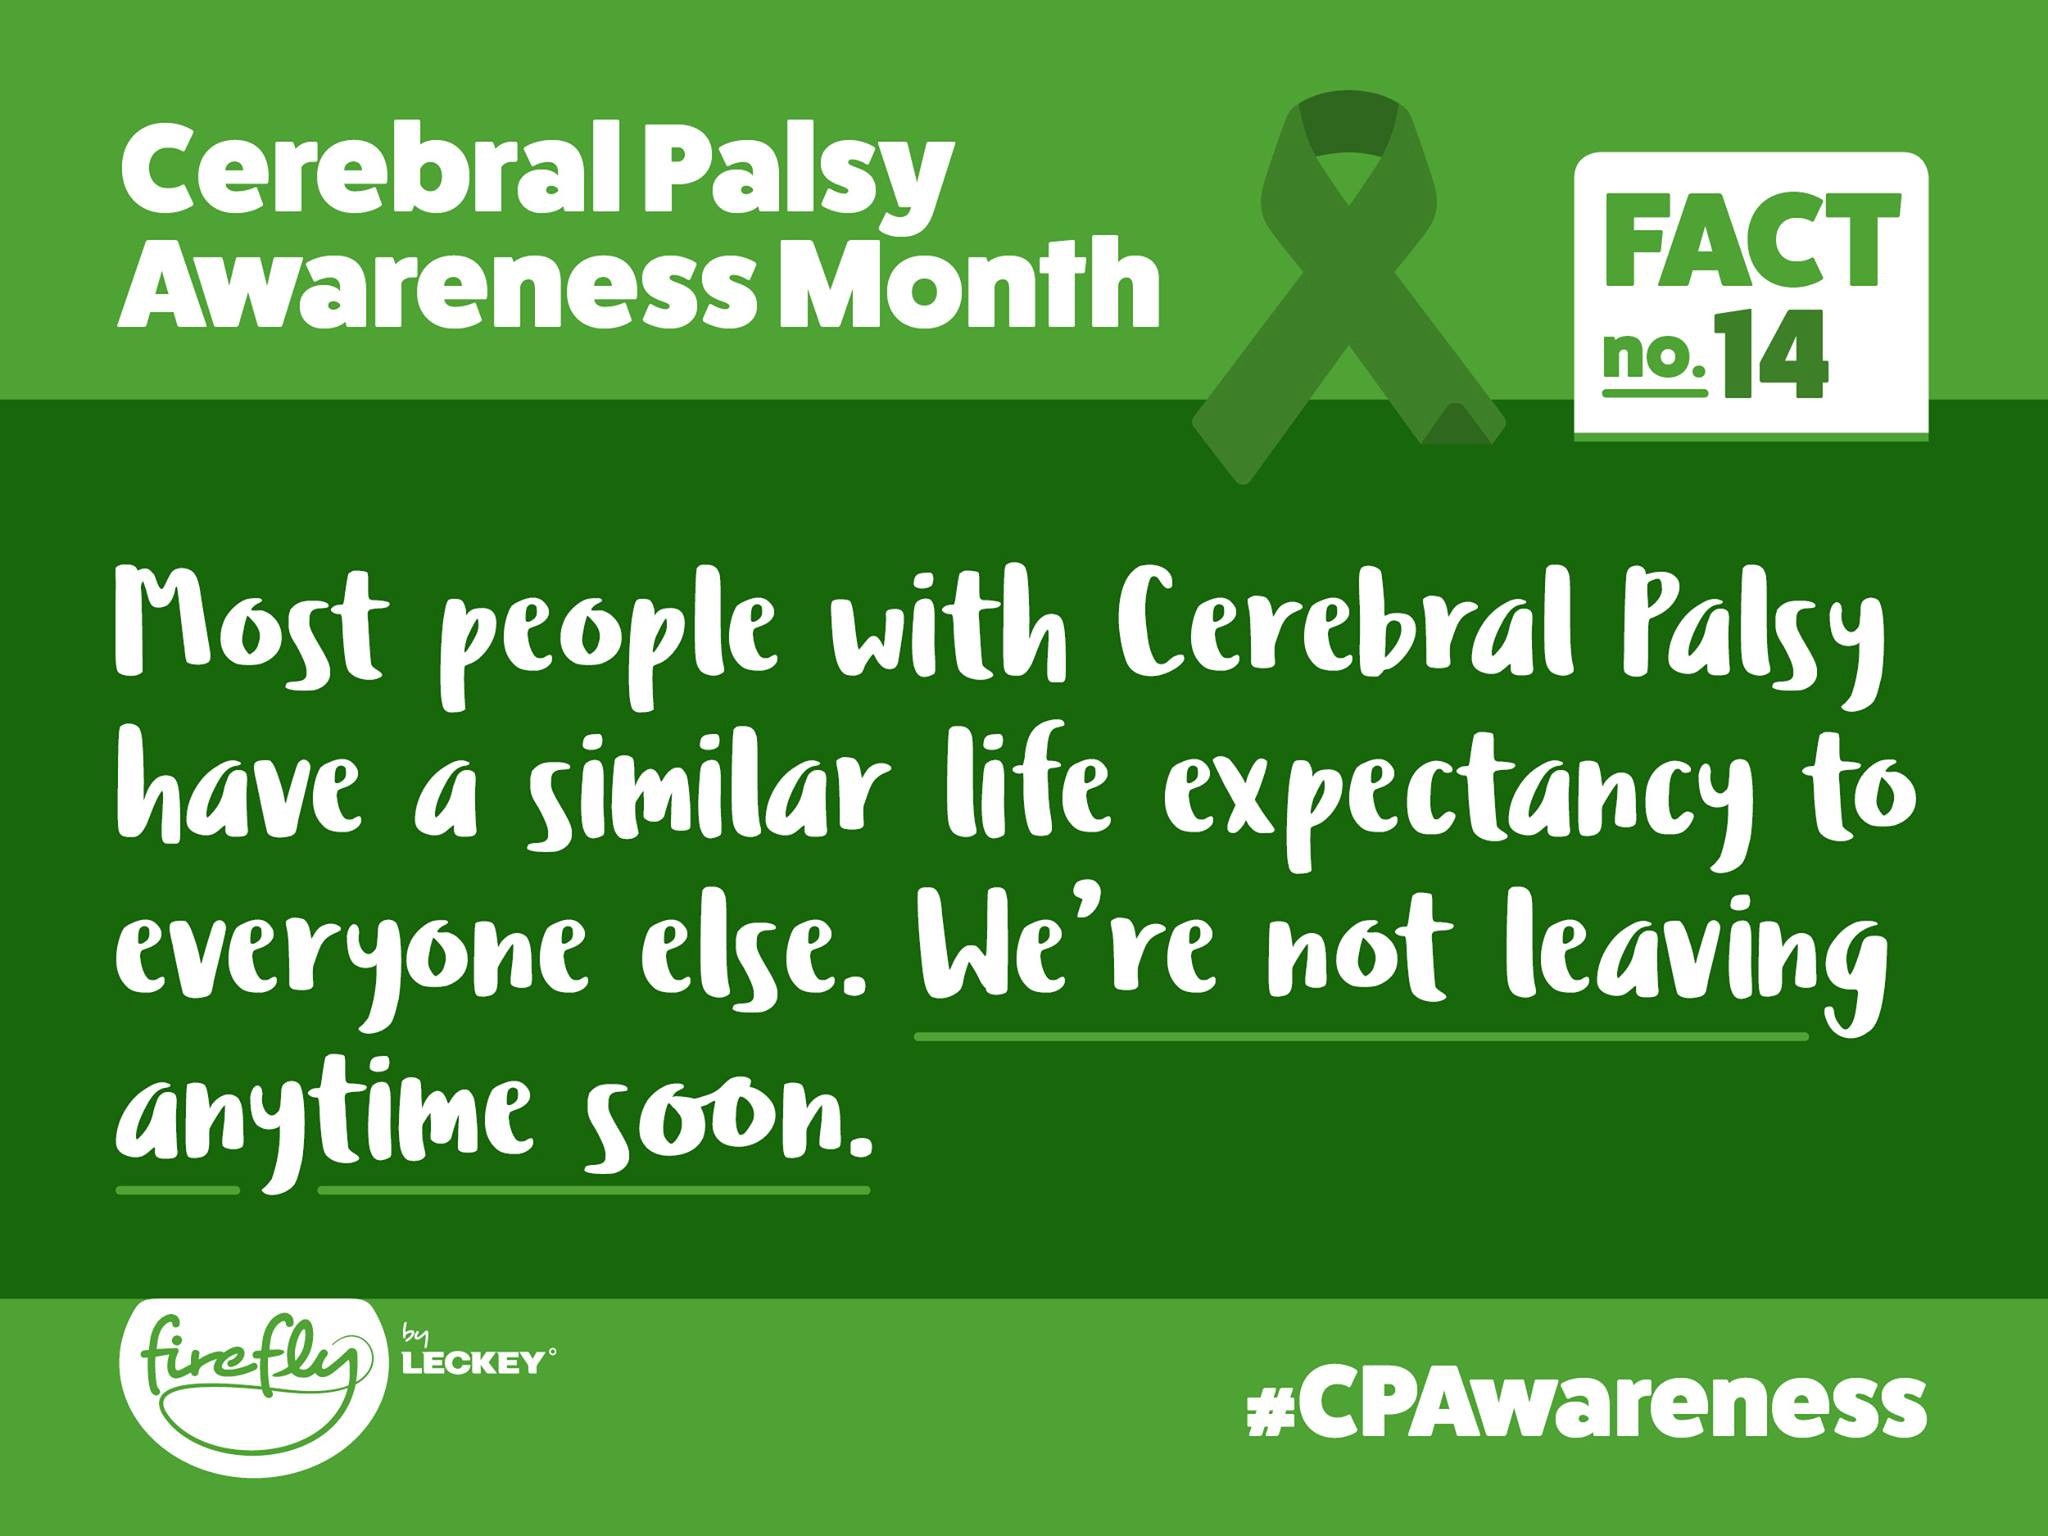 """Most people with Cerebral Palsy have a similar life expectancy to everyone else. We're not leaving anytime soon."""